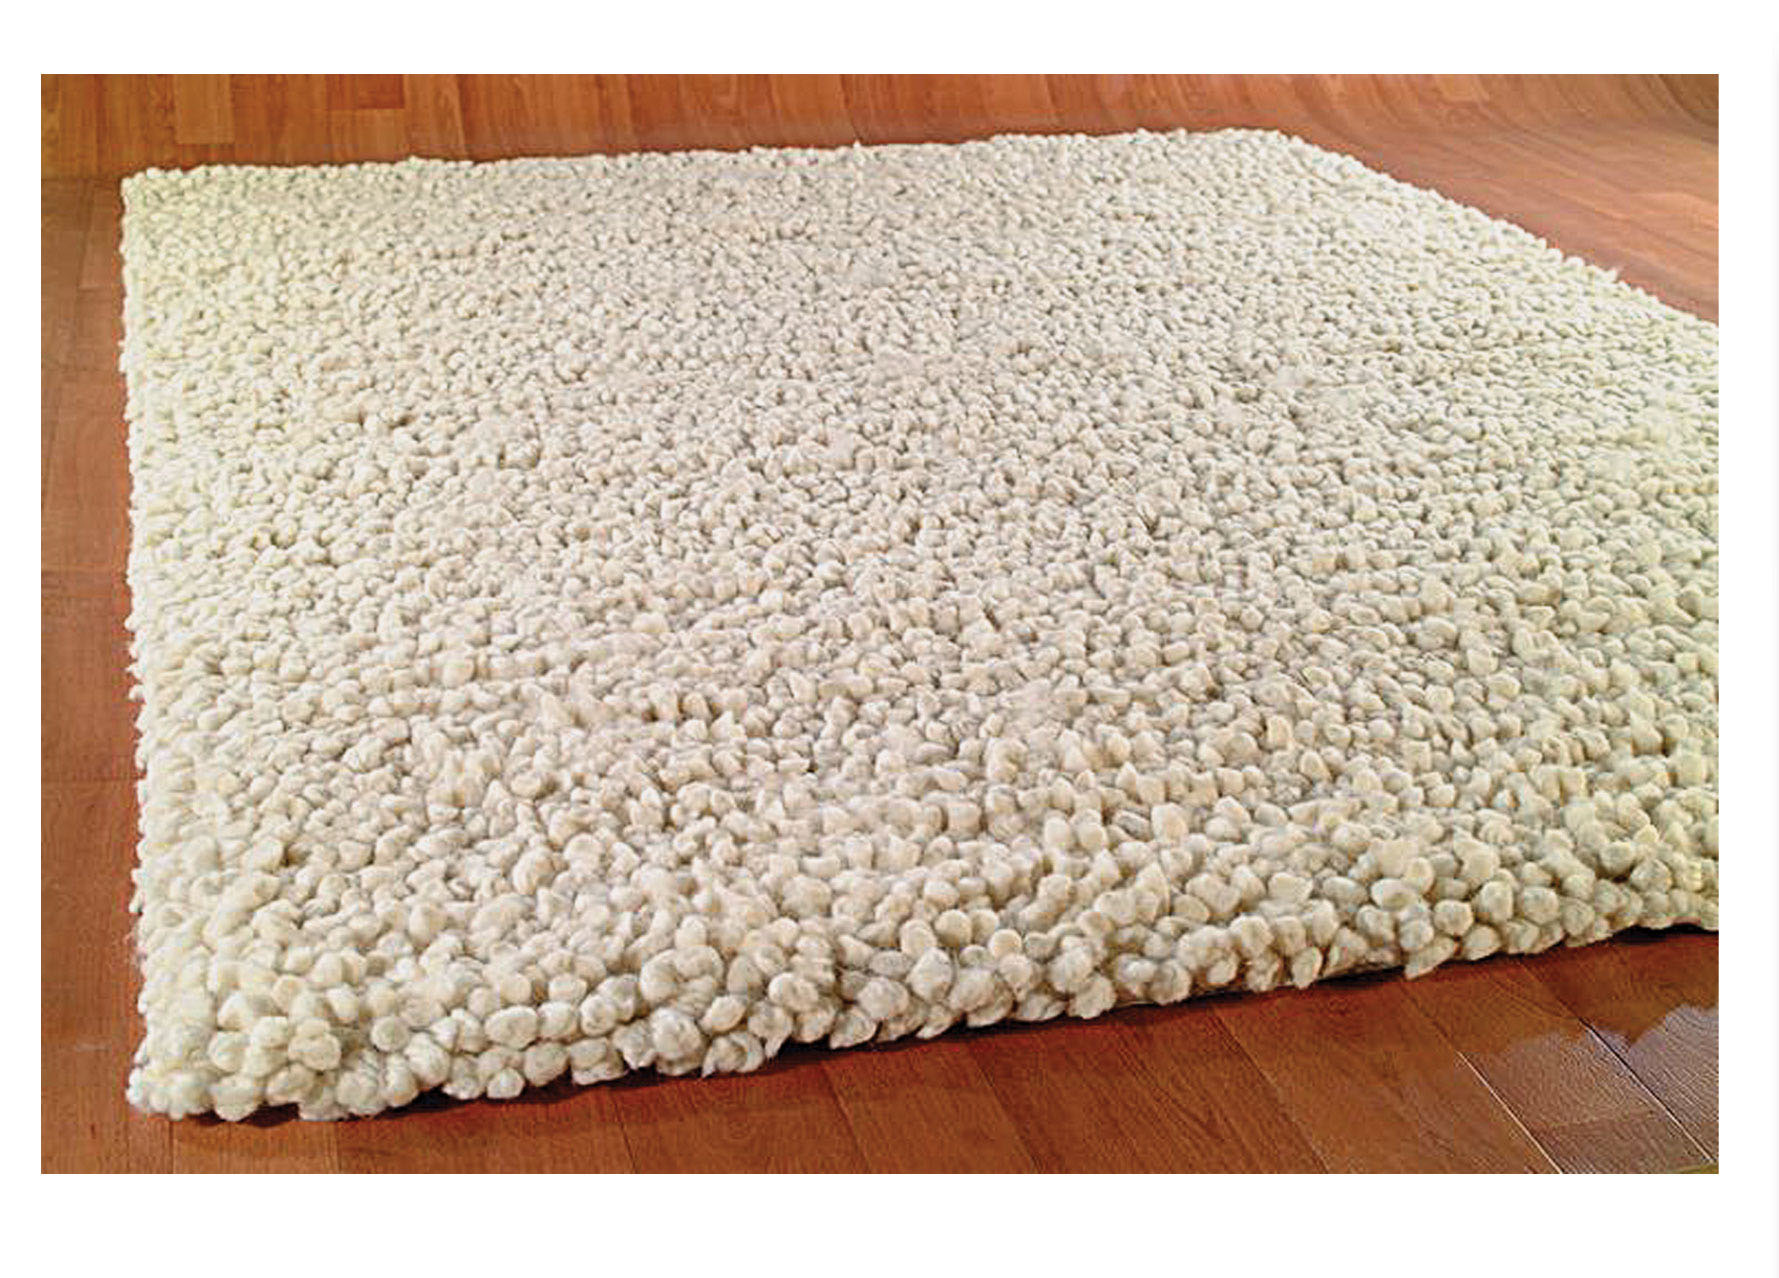 Rugs And Carpets What Makes A Good Rug Decoresource